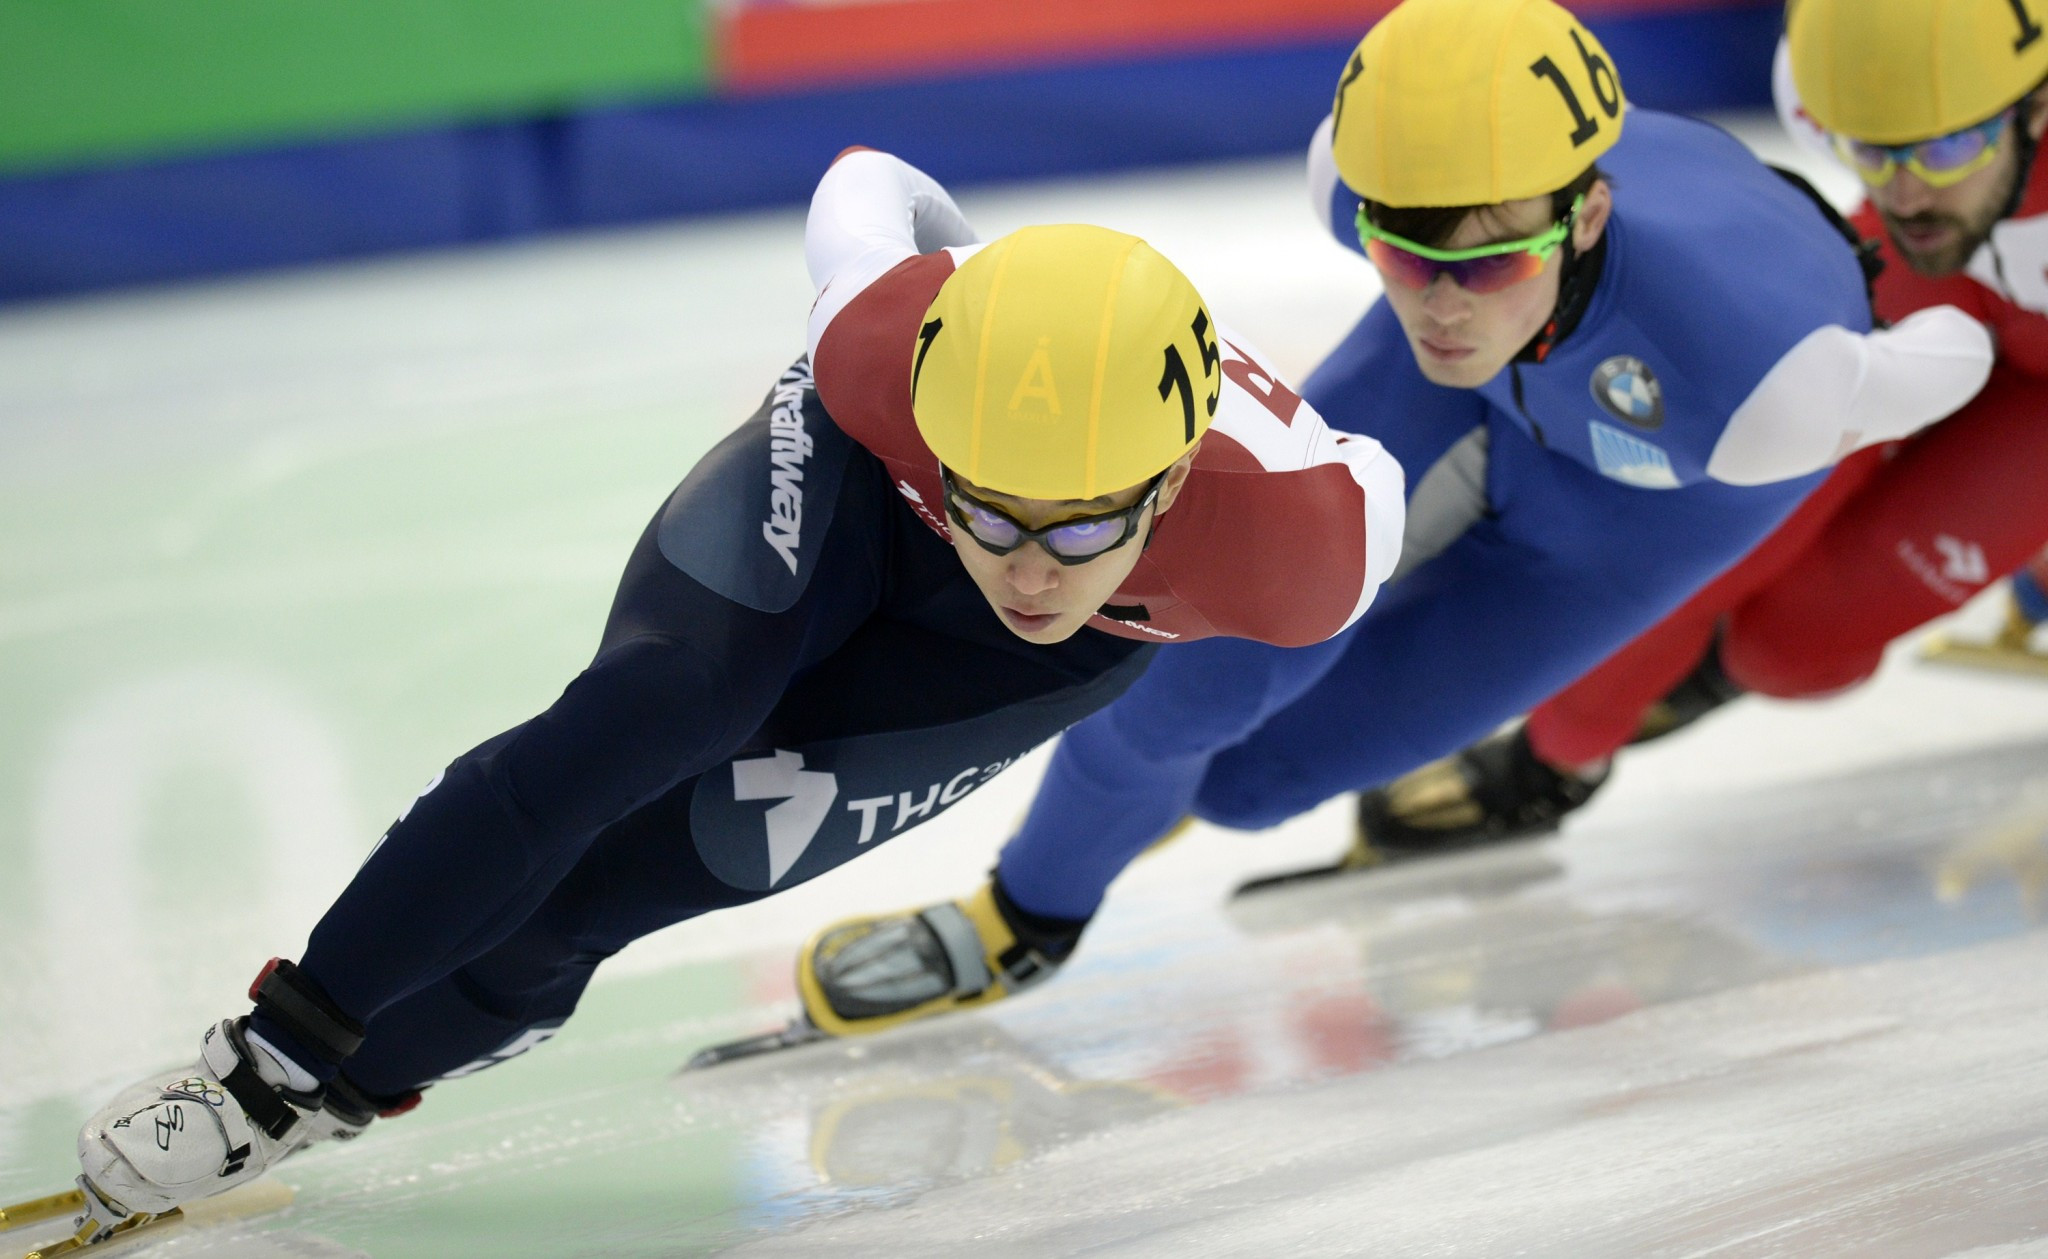 Viktor Ahn, pictured leading at the 2015 World Short Track Speed Skating Championships, will seek further medals at the Pyeongchang 2018 Games as part of the Russian team ©Getty Images